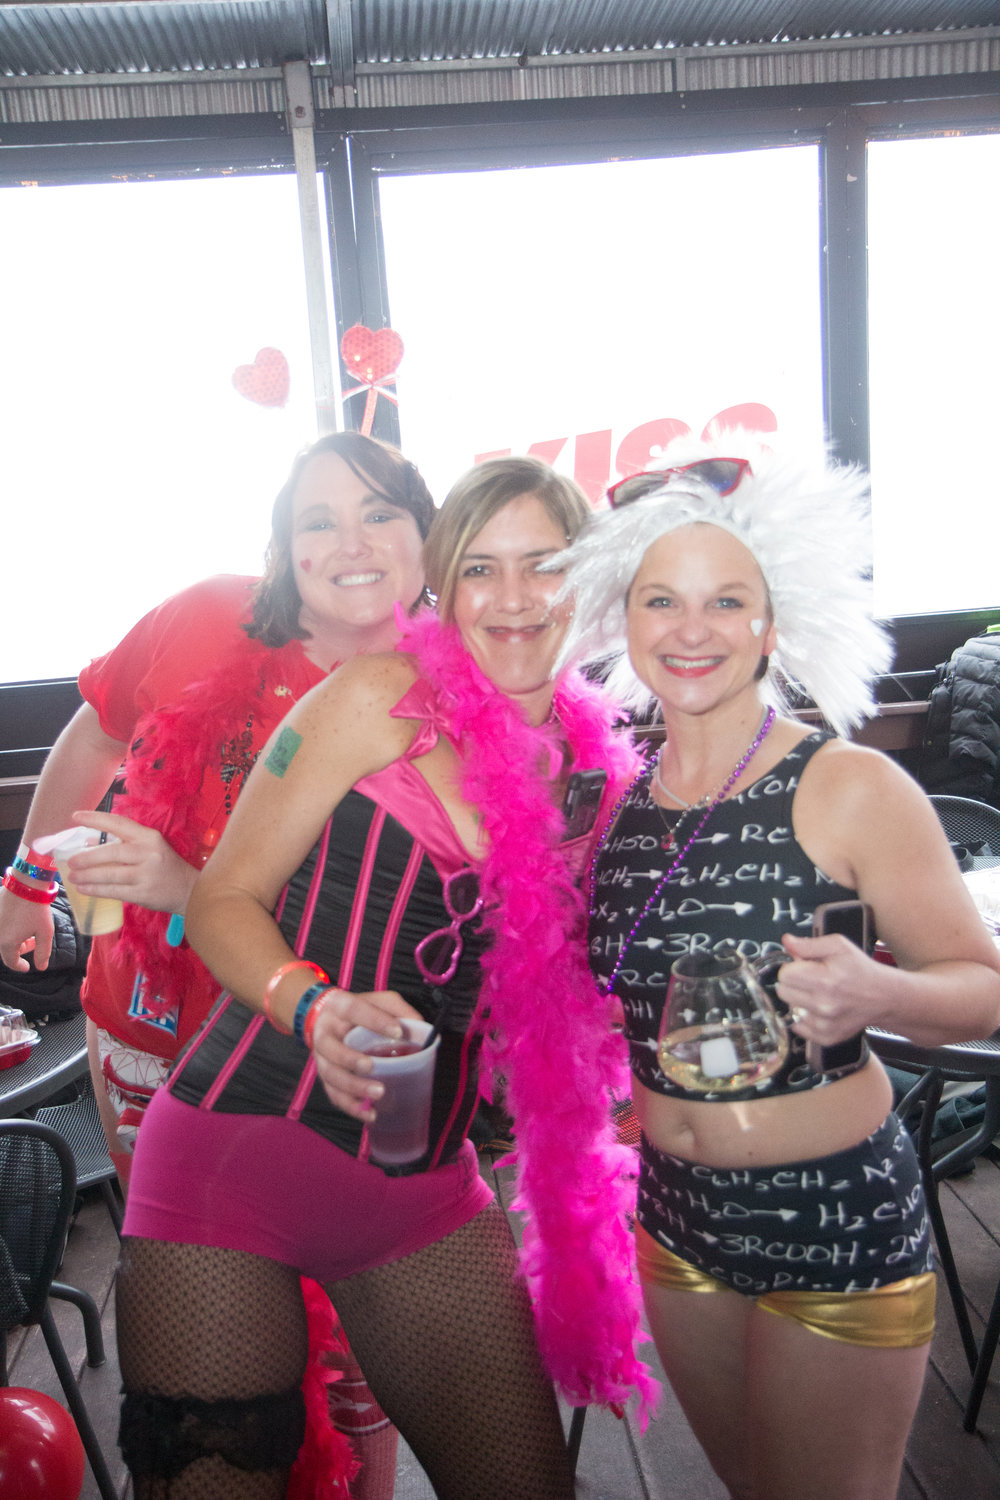 CaseyMillerPhoto - Cupid Undie Run 2018  (38 of 252).jpg